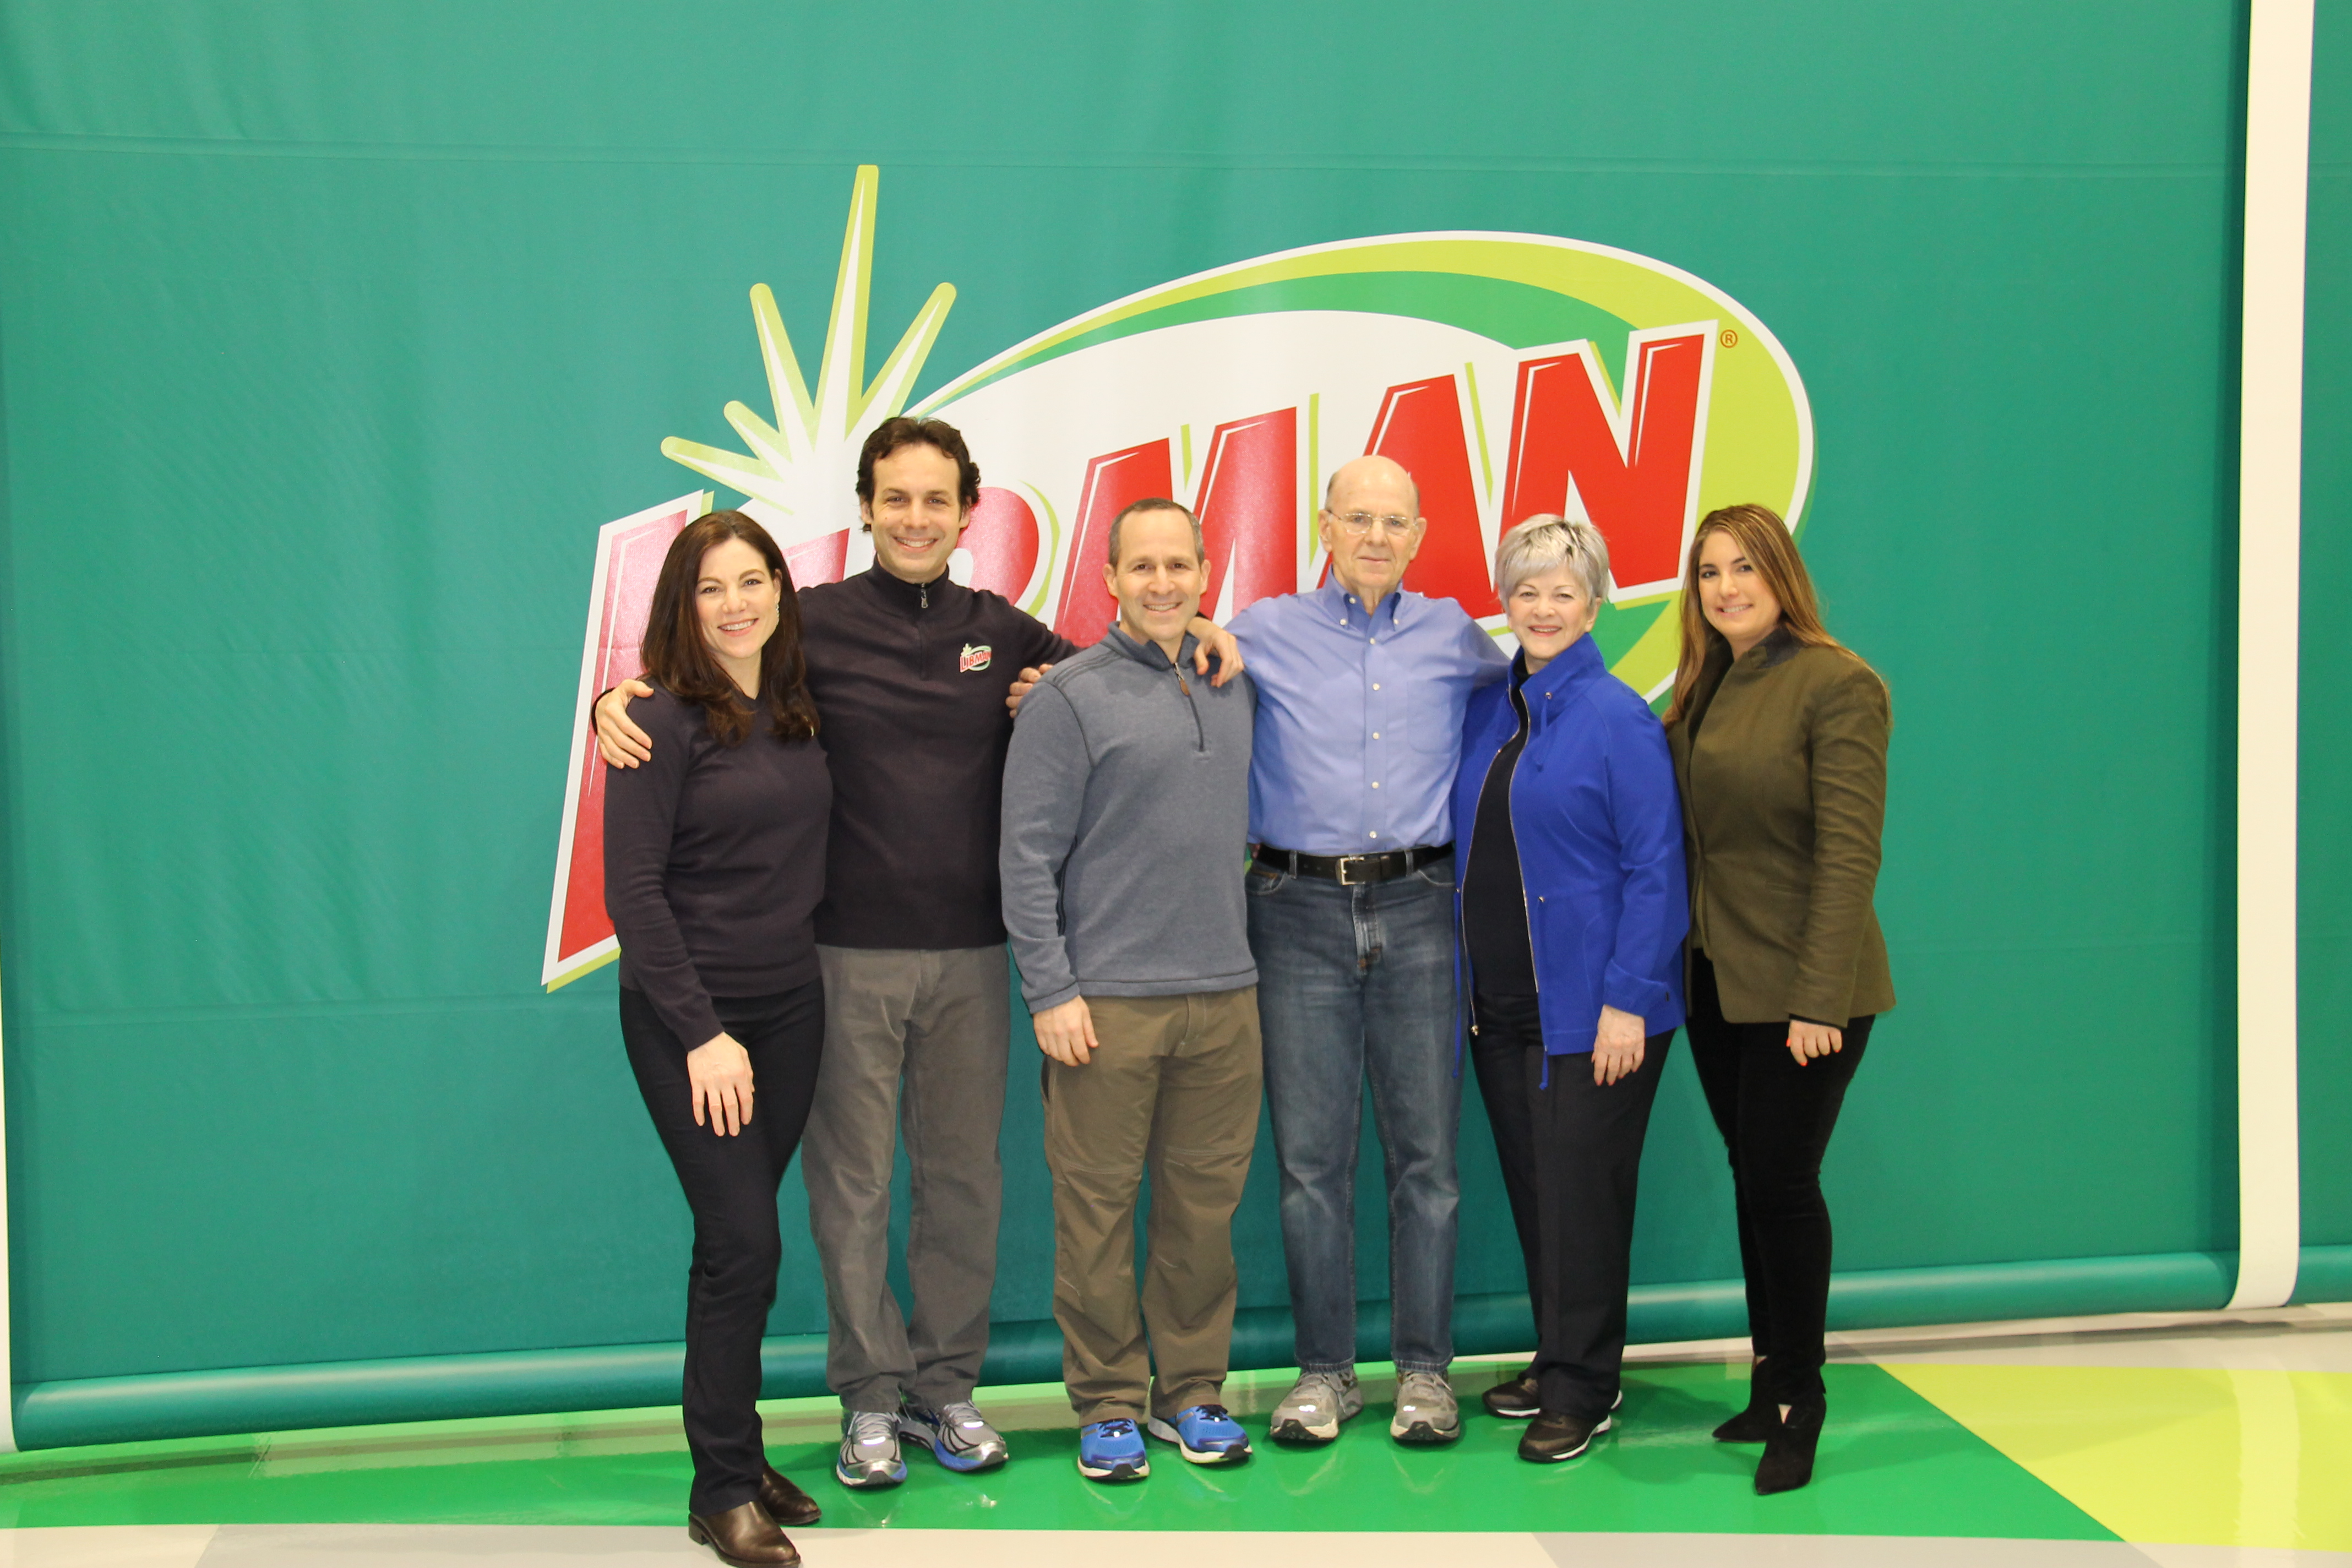 Libman Family - Use this photo636576879157583042